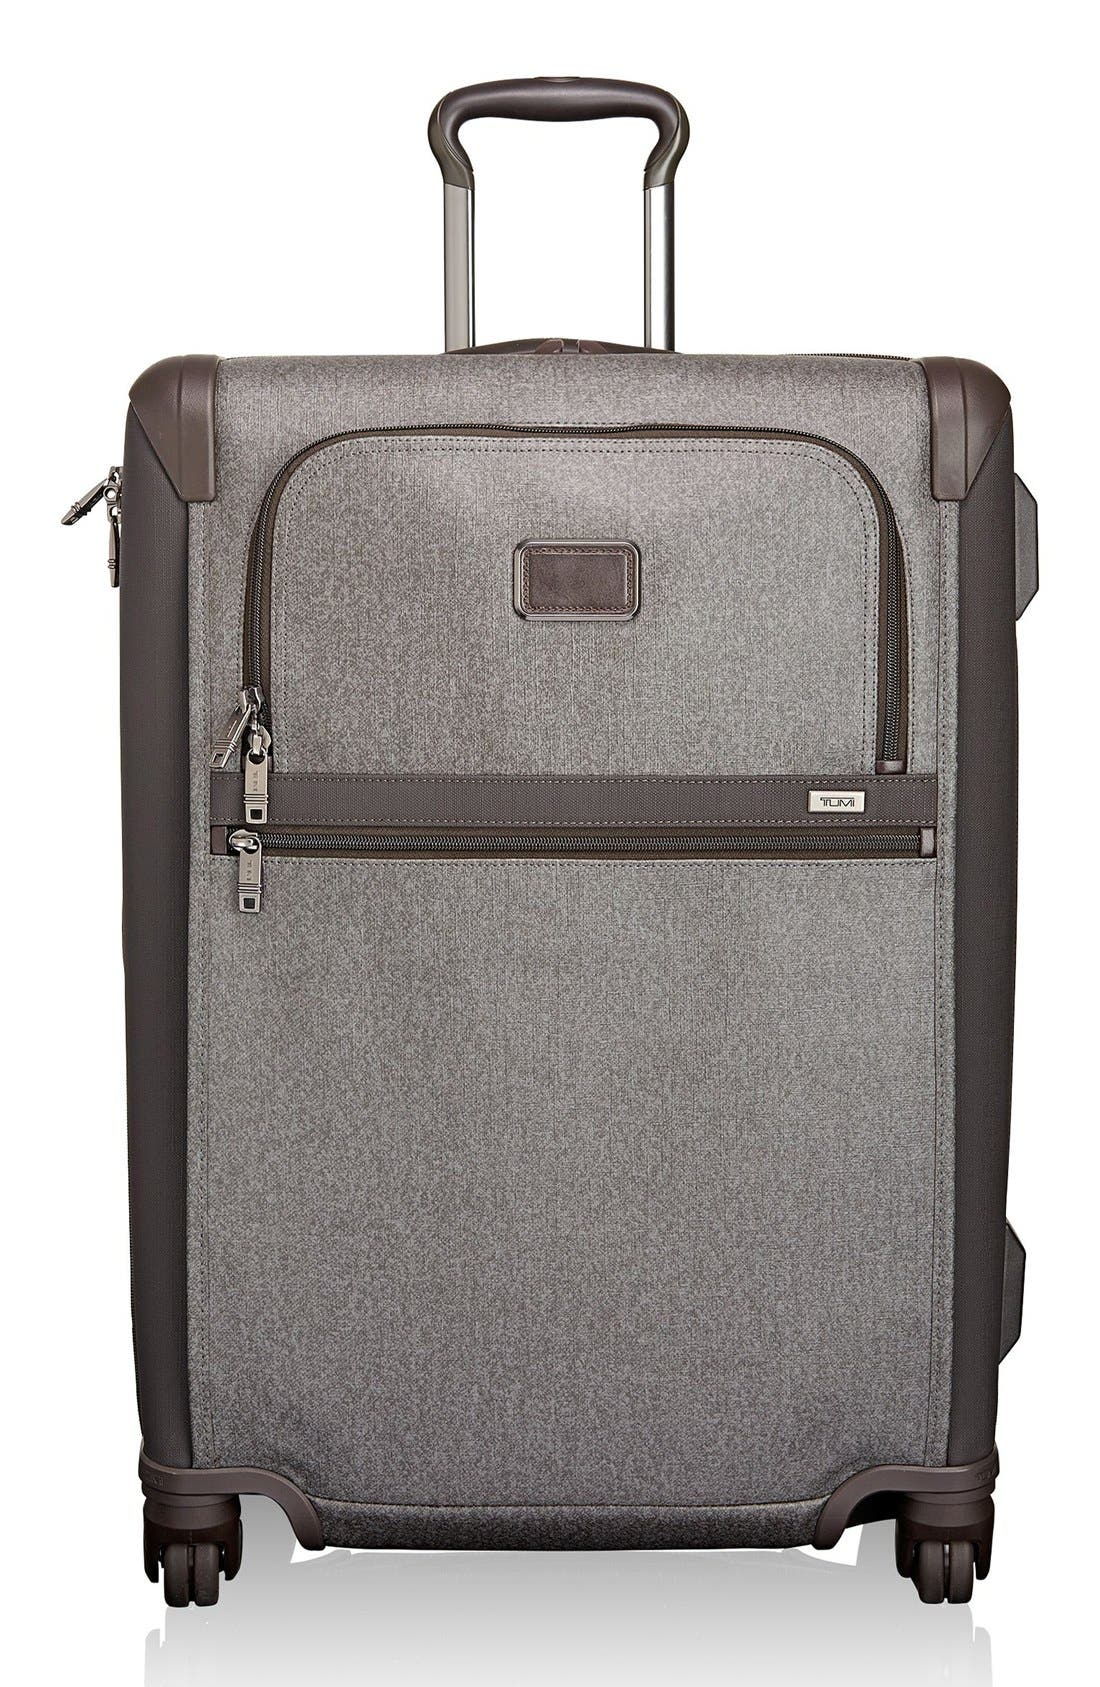 Alpha 2 Short Trip 26-Inch Rolling Four Wheel Packing Case,                             Main thumbnail 1, color,                             068